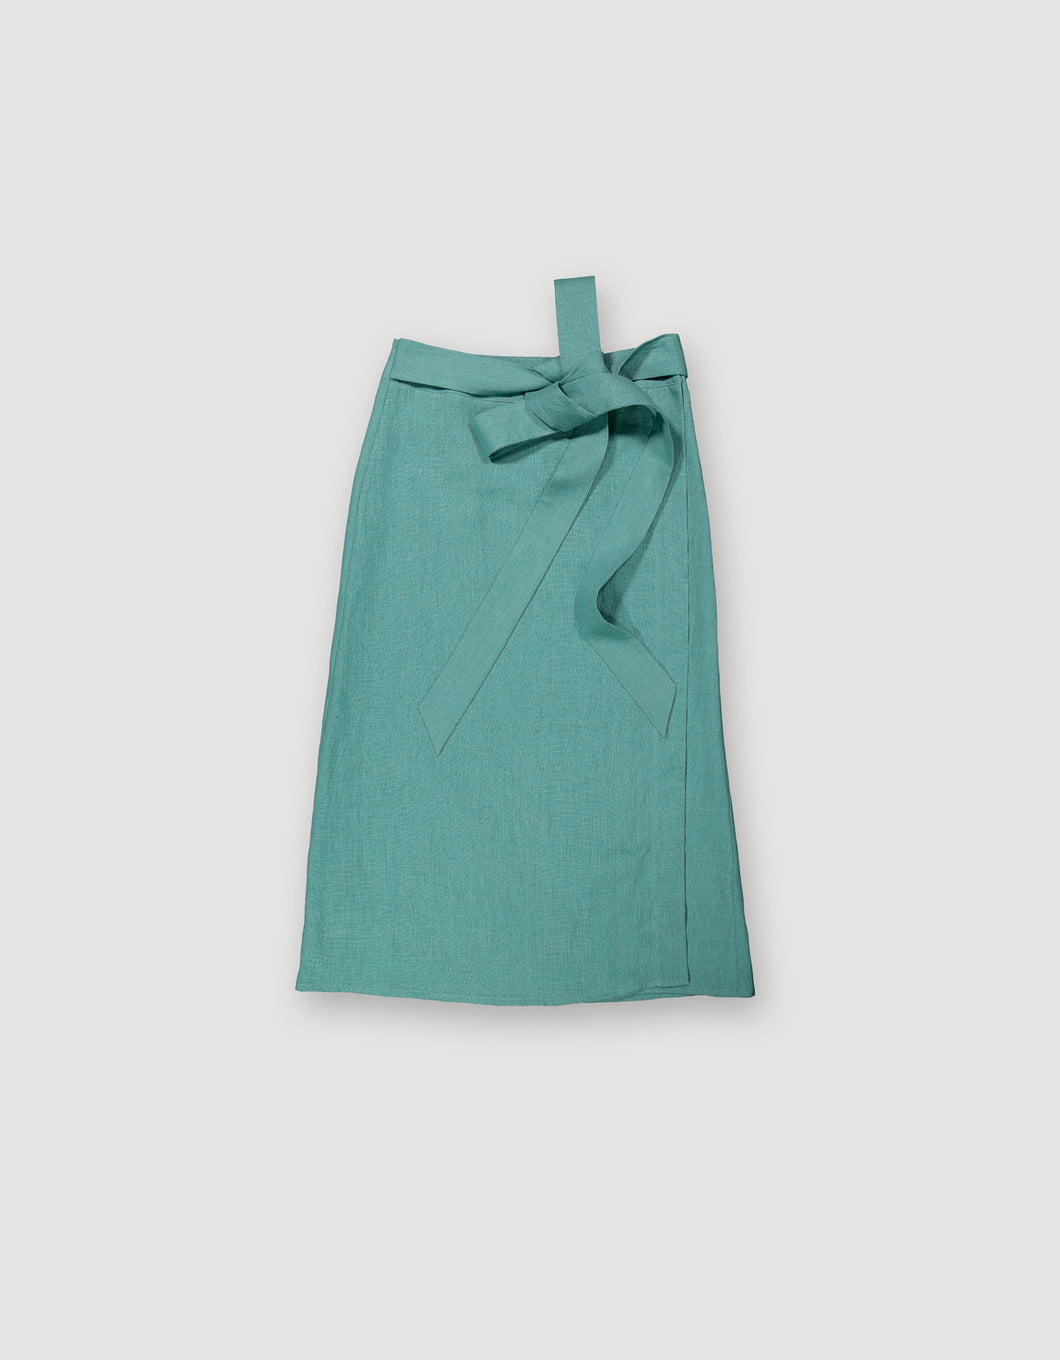 WRAP SKIRT (LIGHT TURQUOISE)